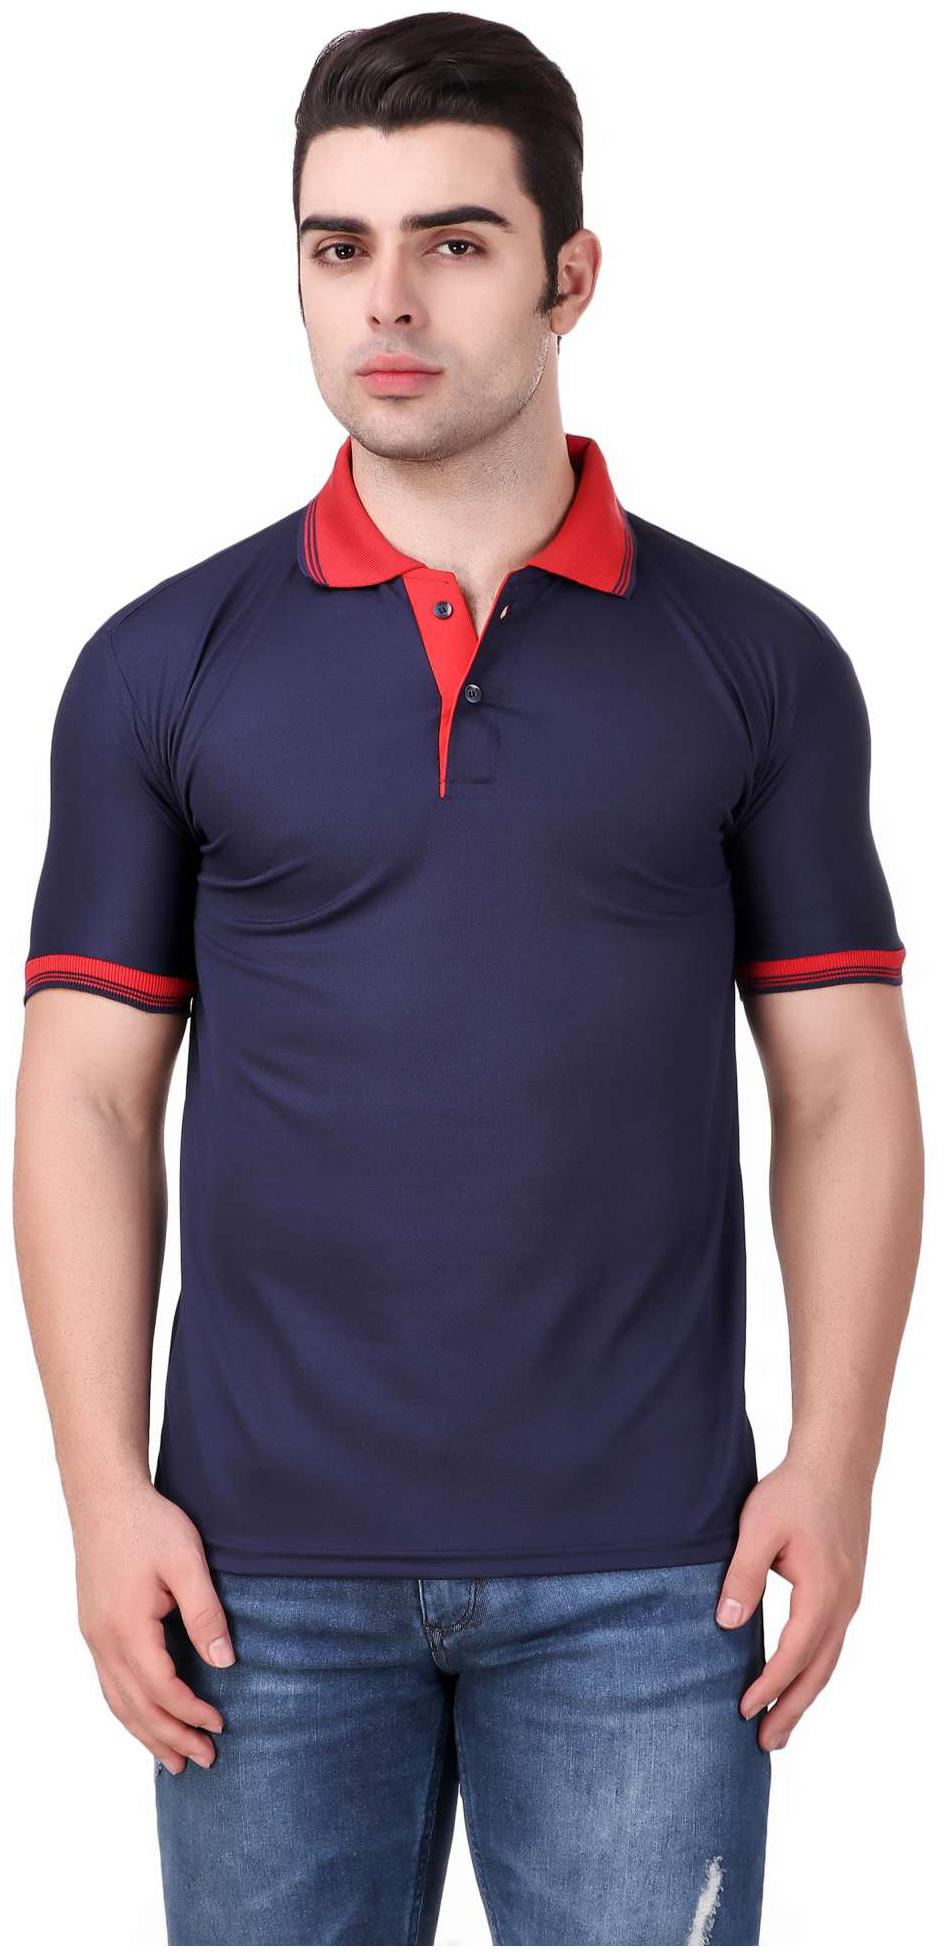 8ed5ff9b T shirts for Men - Buy Branded T-shirts, Polo T-shirts, Full Sleeve T Shirts  Online